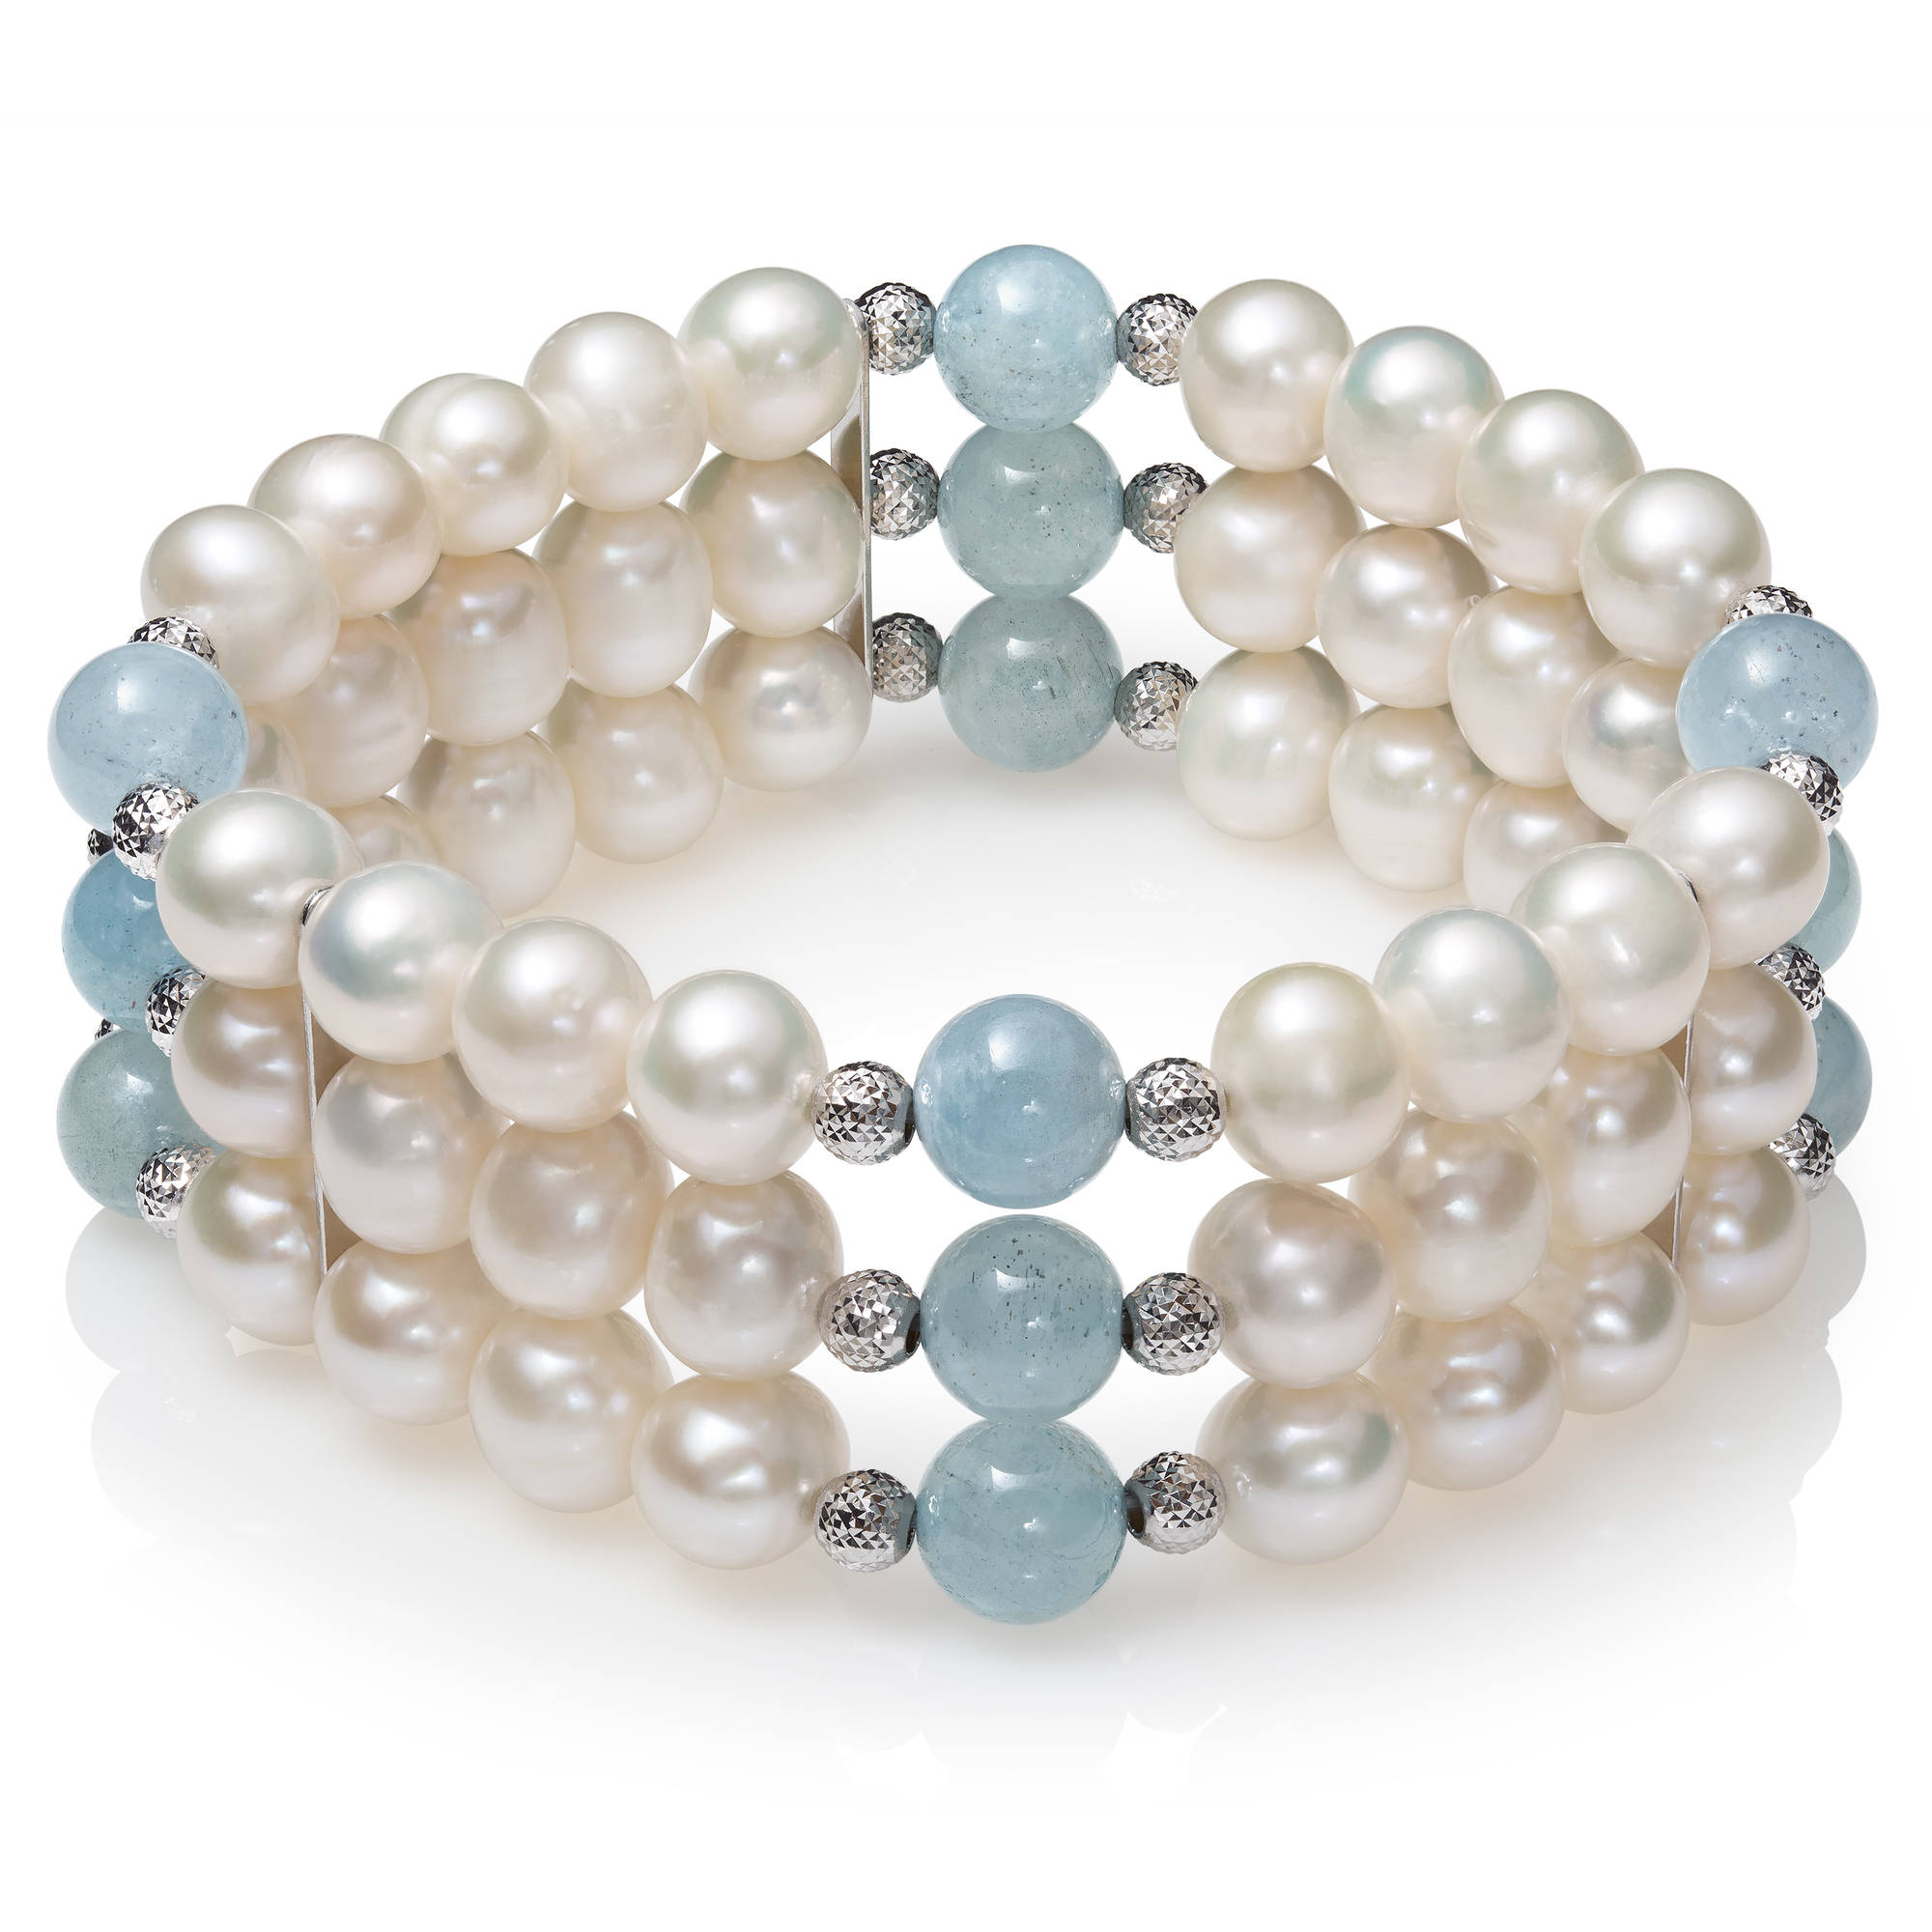 """7-8mm Cultured Freshwater Pearl and Milky Aquamarine 3-Row Stretch Bracelet with Sterling Silver Accent Beads, 7.5"""" by China Pearl"""